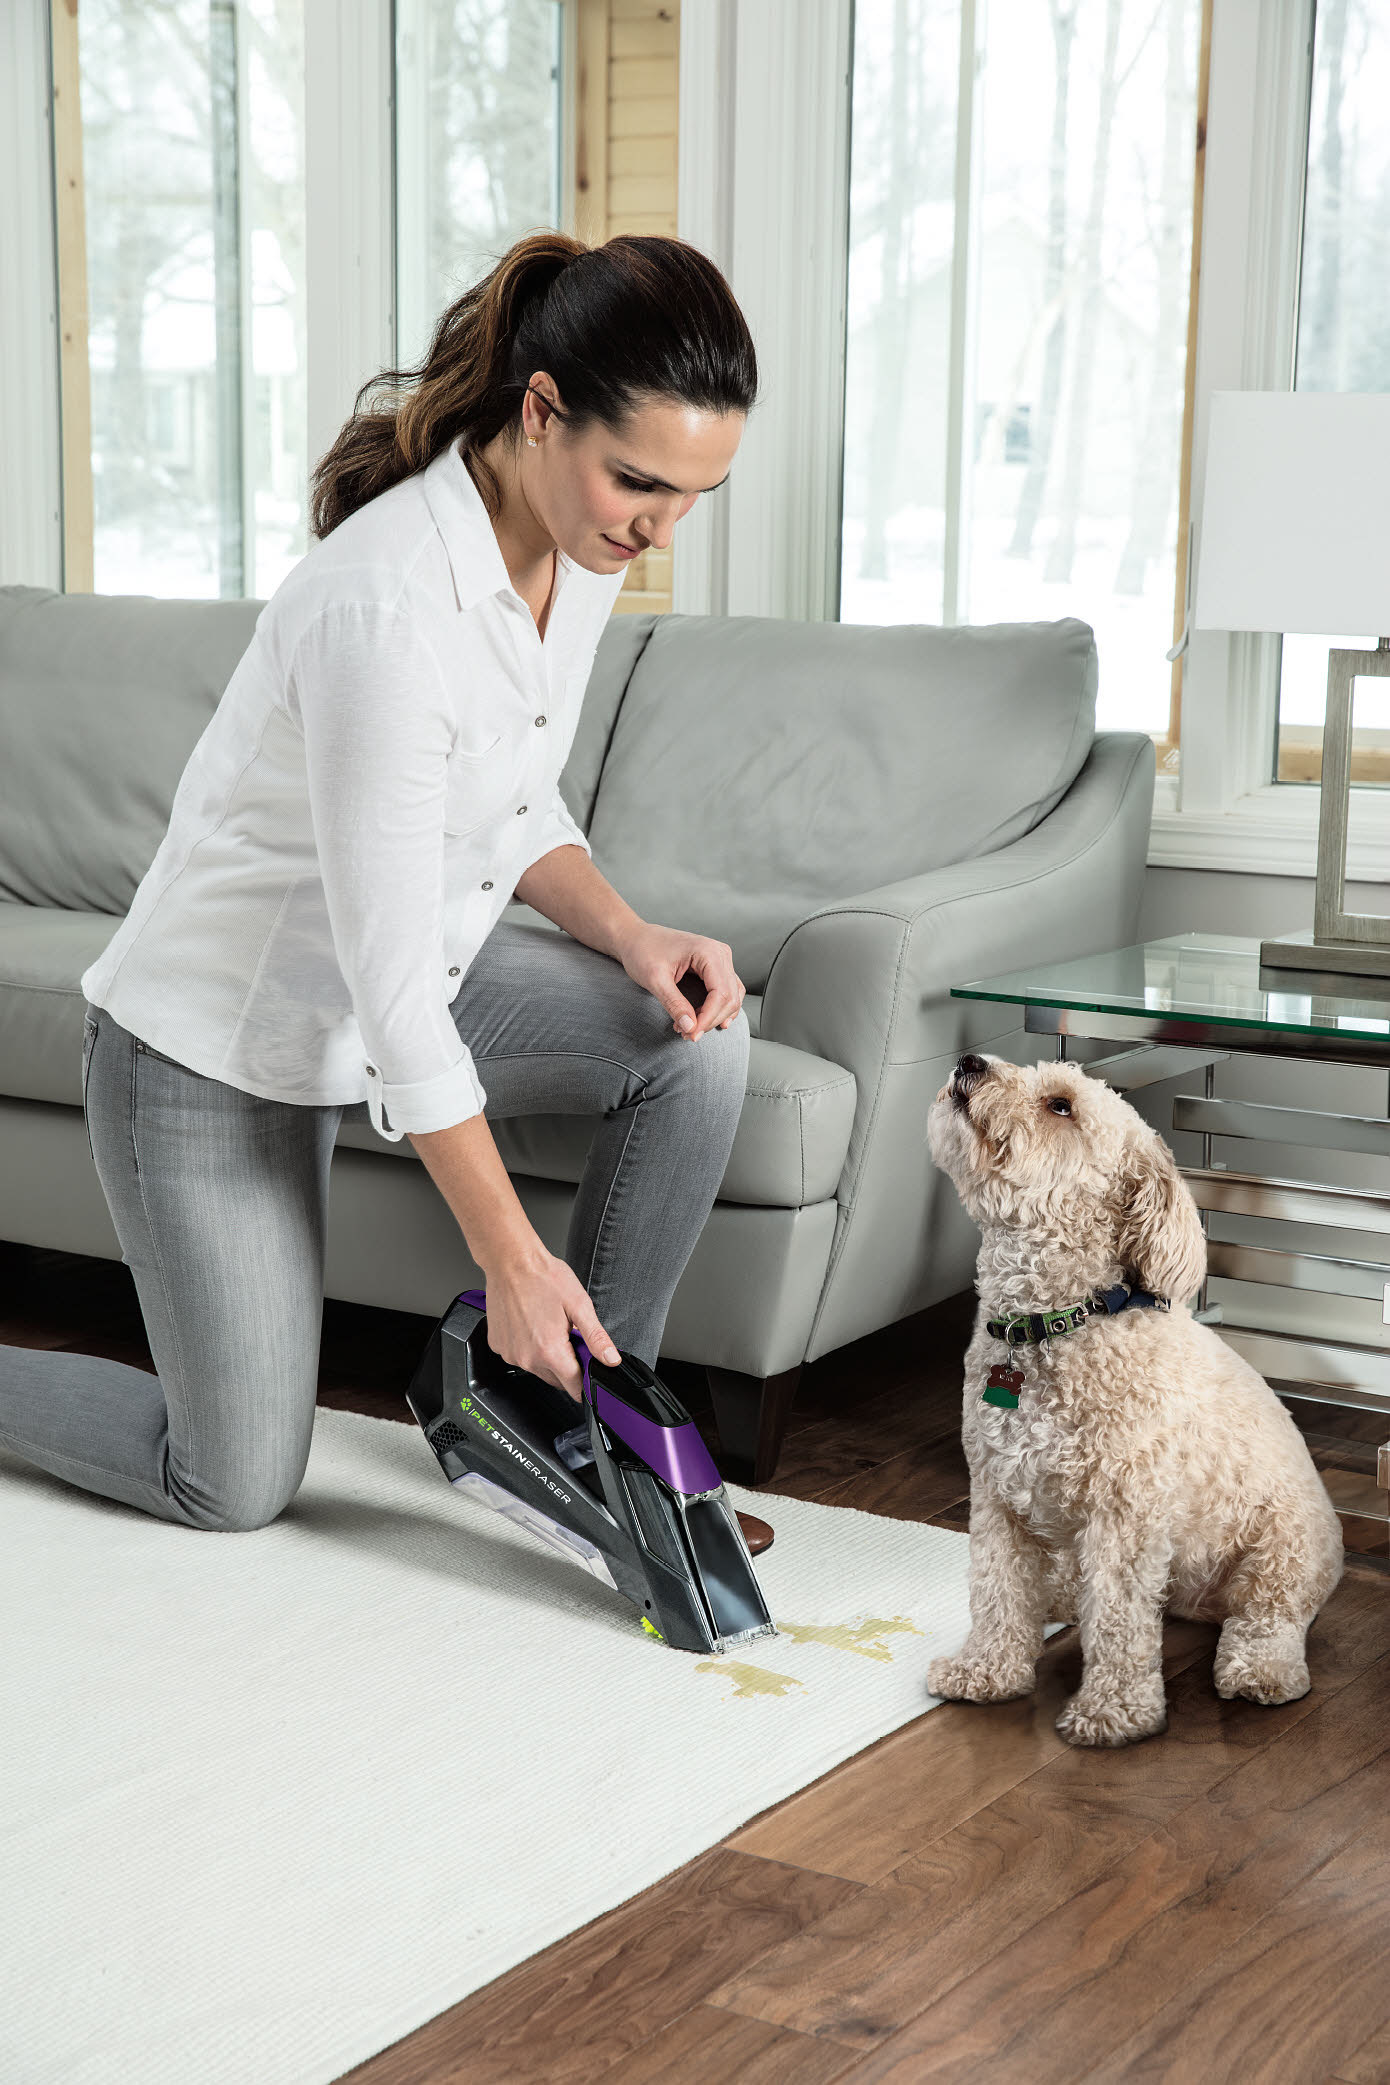 The gray and purple carpet cleaner